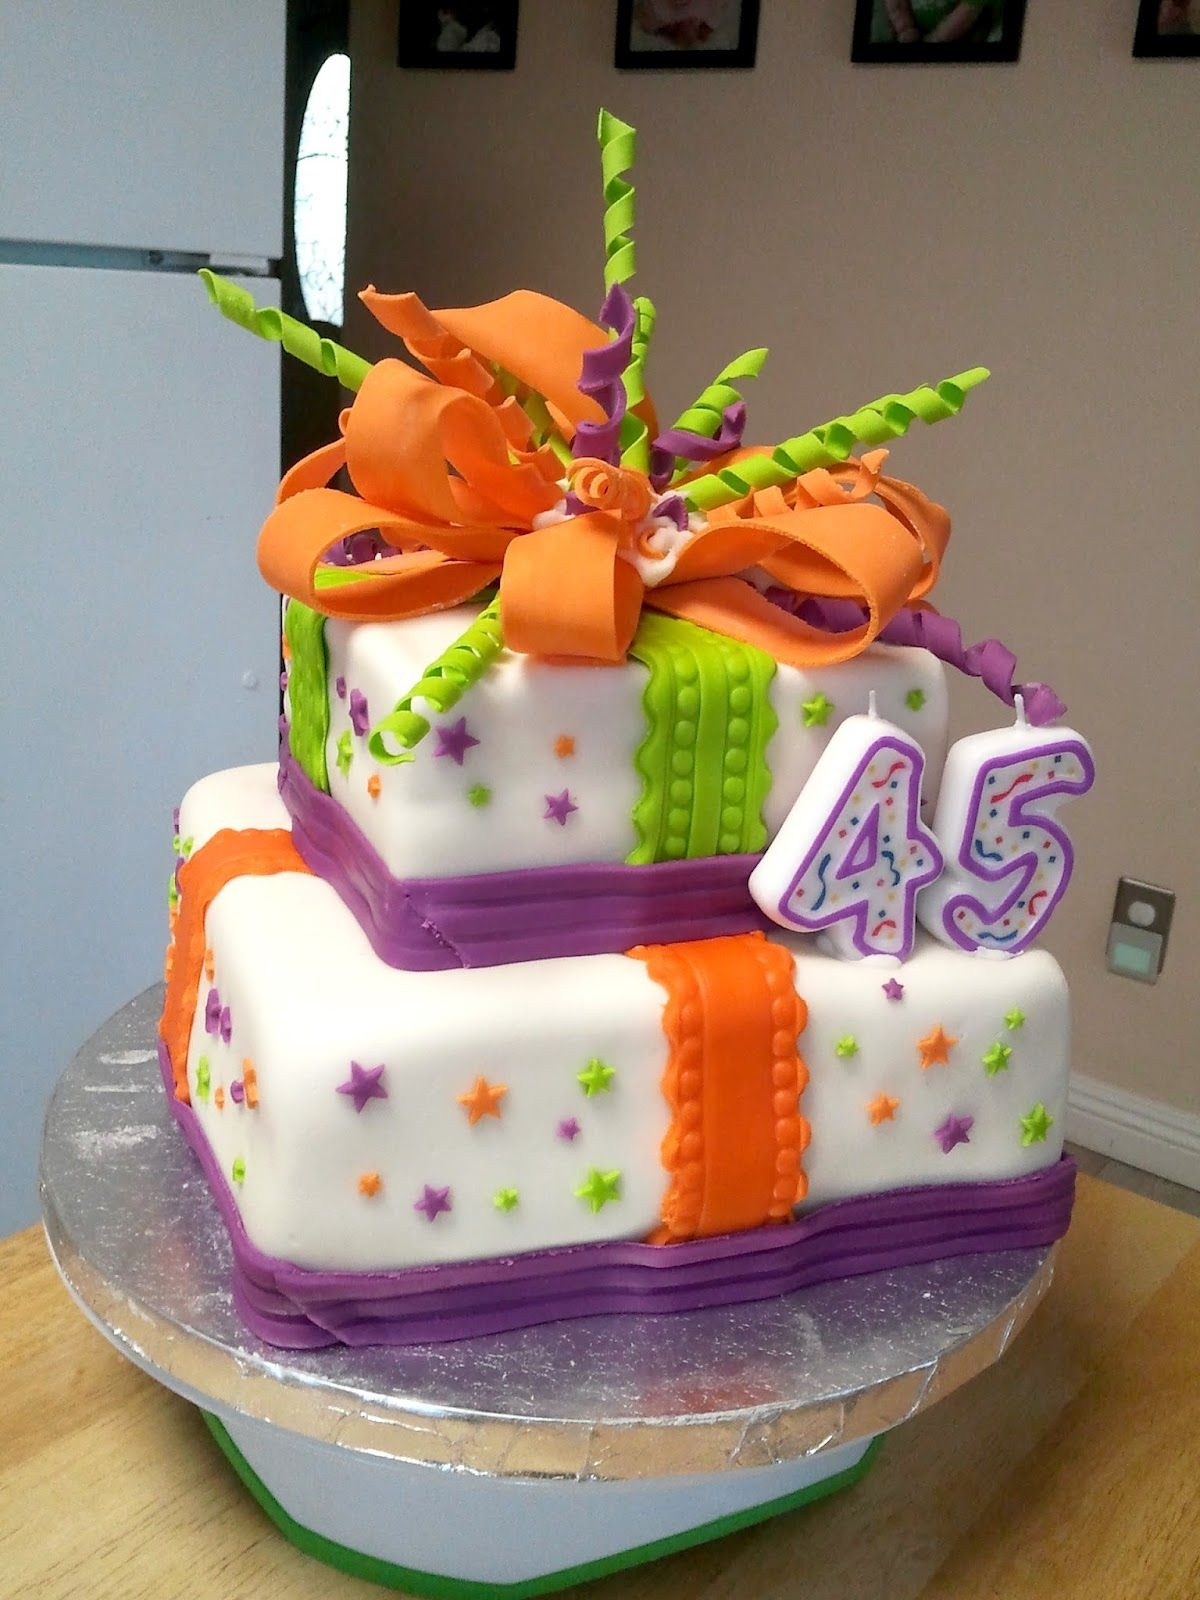 45th Birthday Cake Idea Birthday Present Cake Fondant Cakes